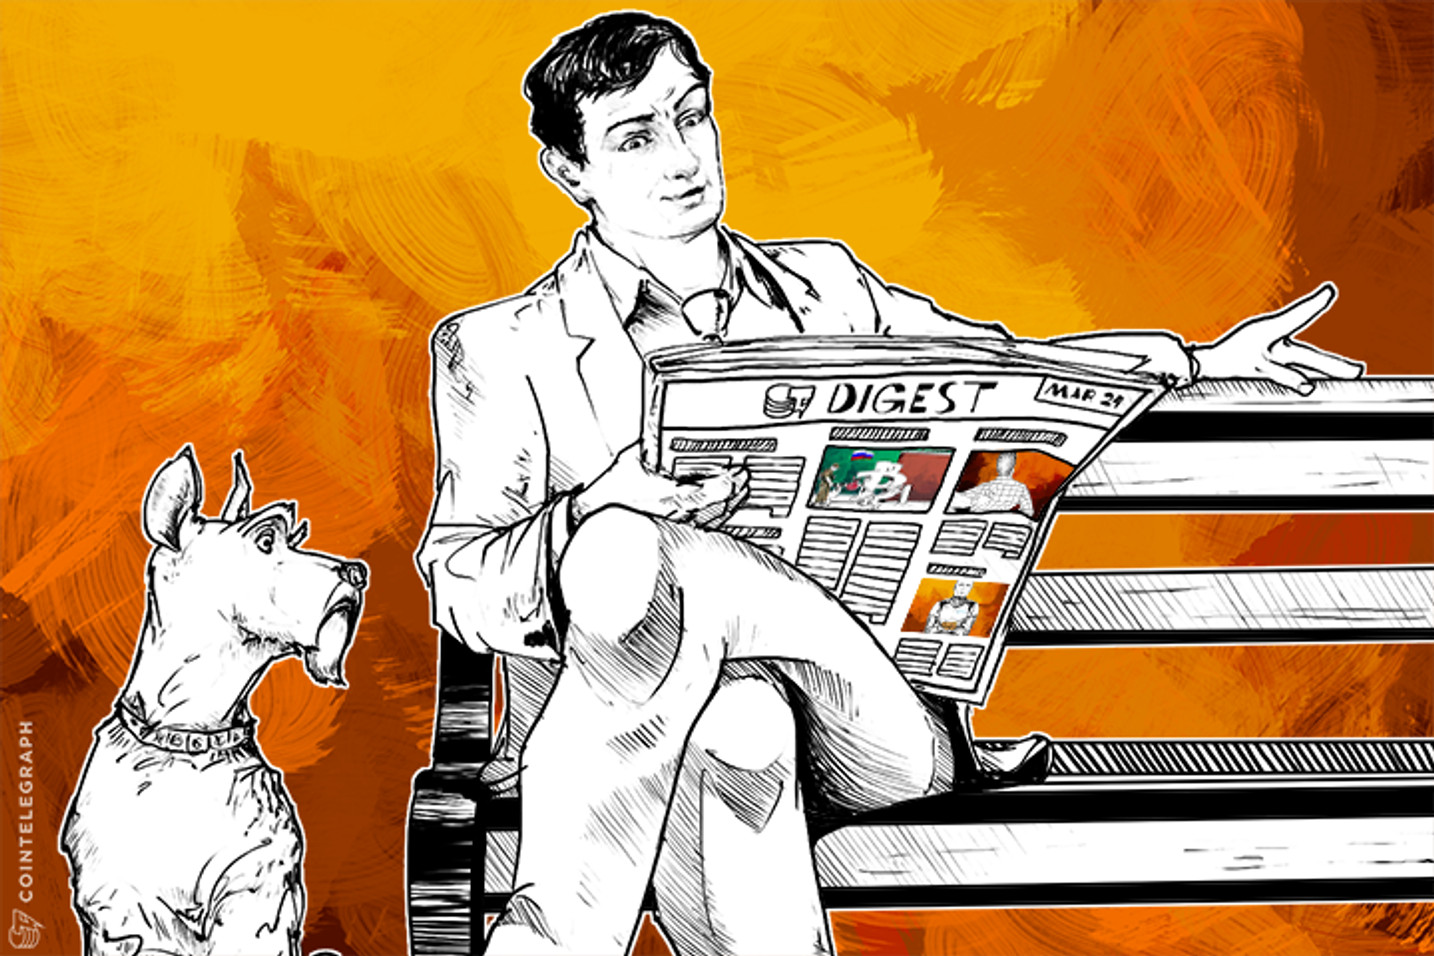 MAR 24 DIGEST: NASDAQ-Powered BTC Marketplace Announced, Russia's Anti-Bitcoin Law Confirmed for 2015